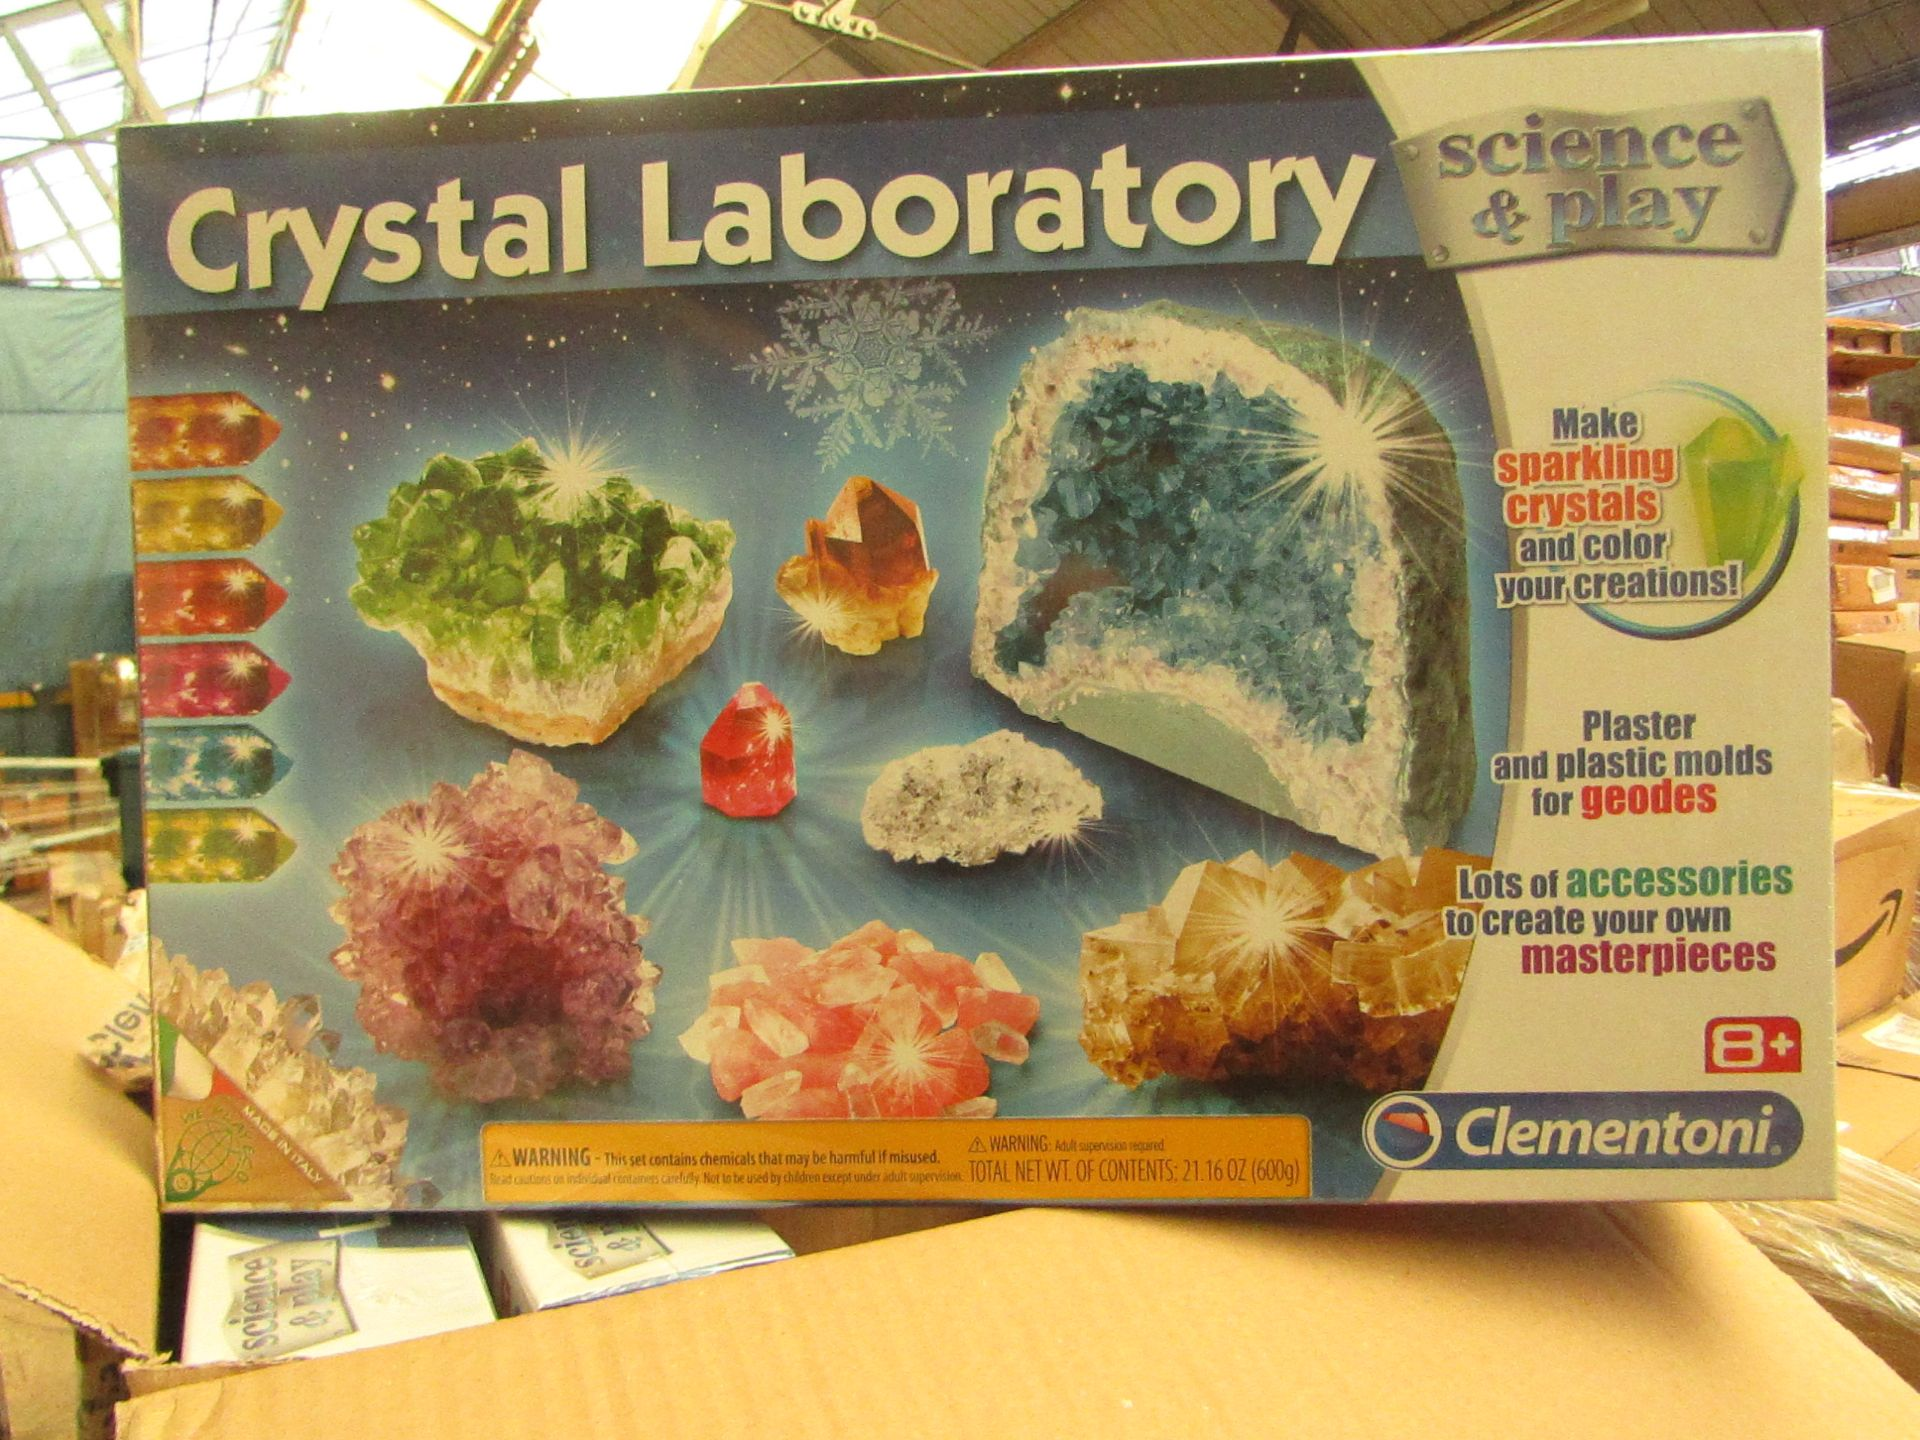 Clementoni Crystal Laboratory. Make your own Crystals. Unused & Packaged